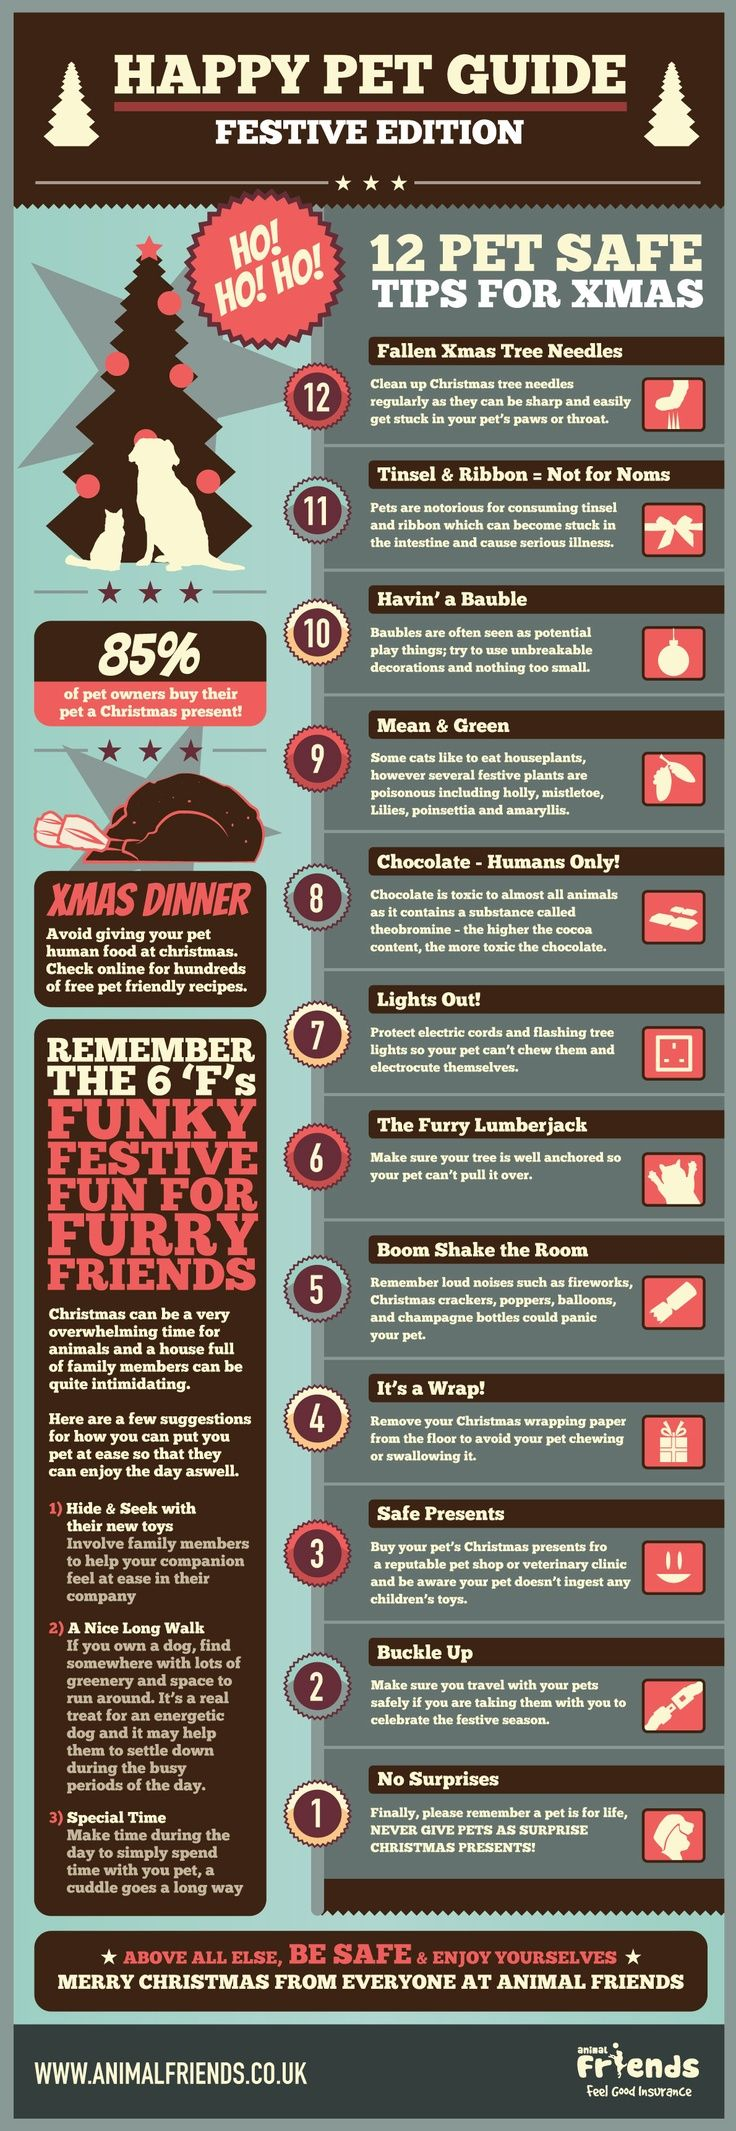 Christmas Pet Safety! #infographic #holidays Second Hope Circle helps special needs pets in Ontario find homes through promotion, education and funding! www.secondhopecirle.org